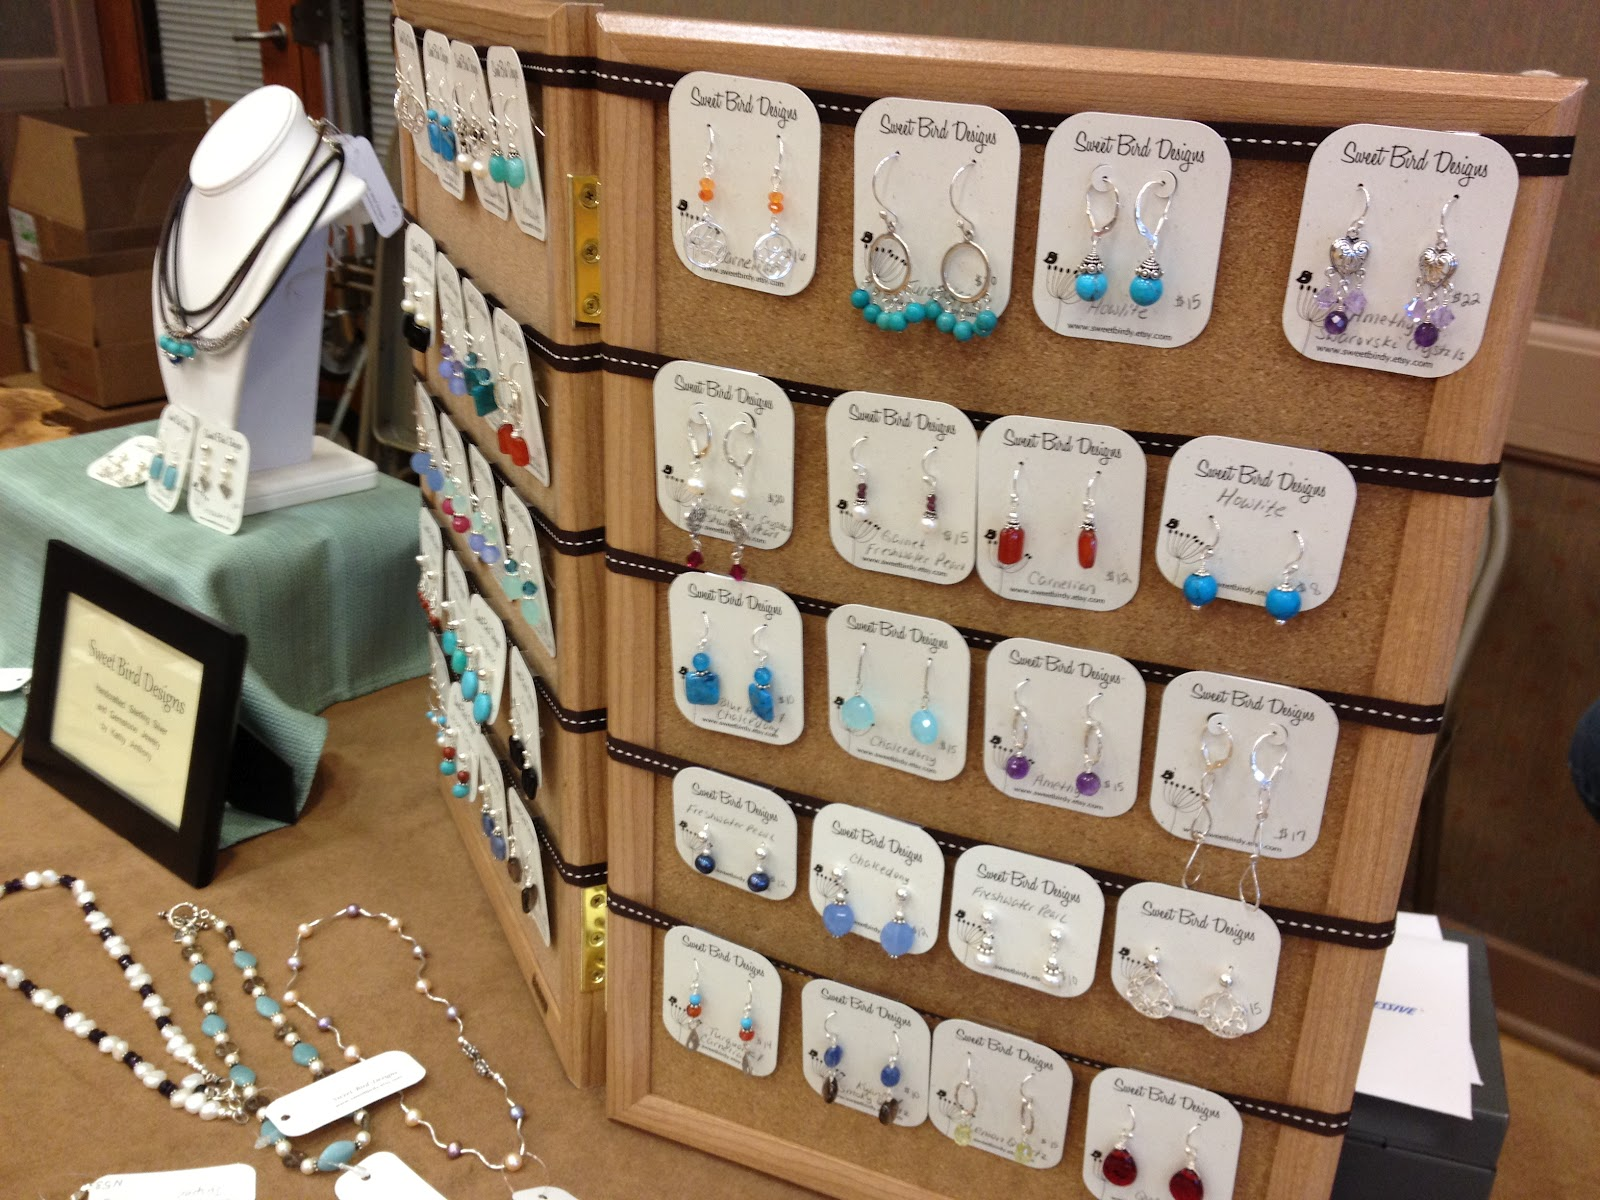 birdy chat craft show jewelry display tips